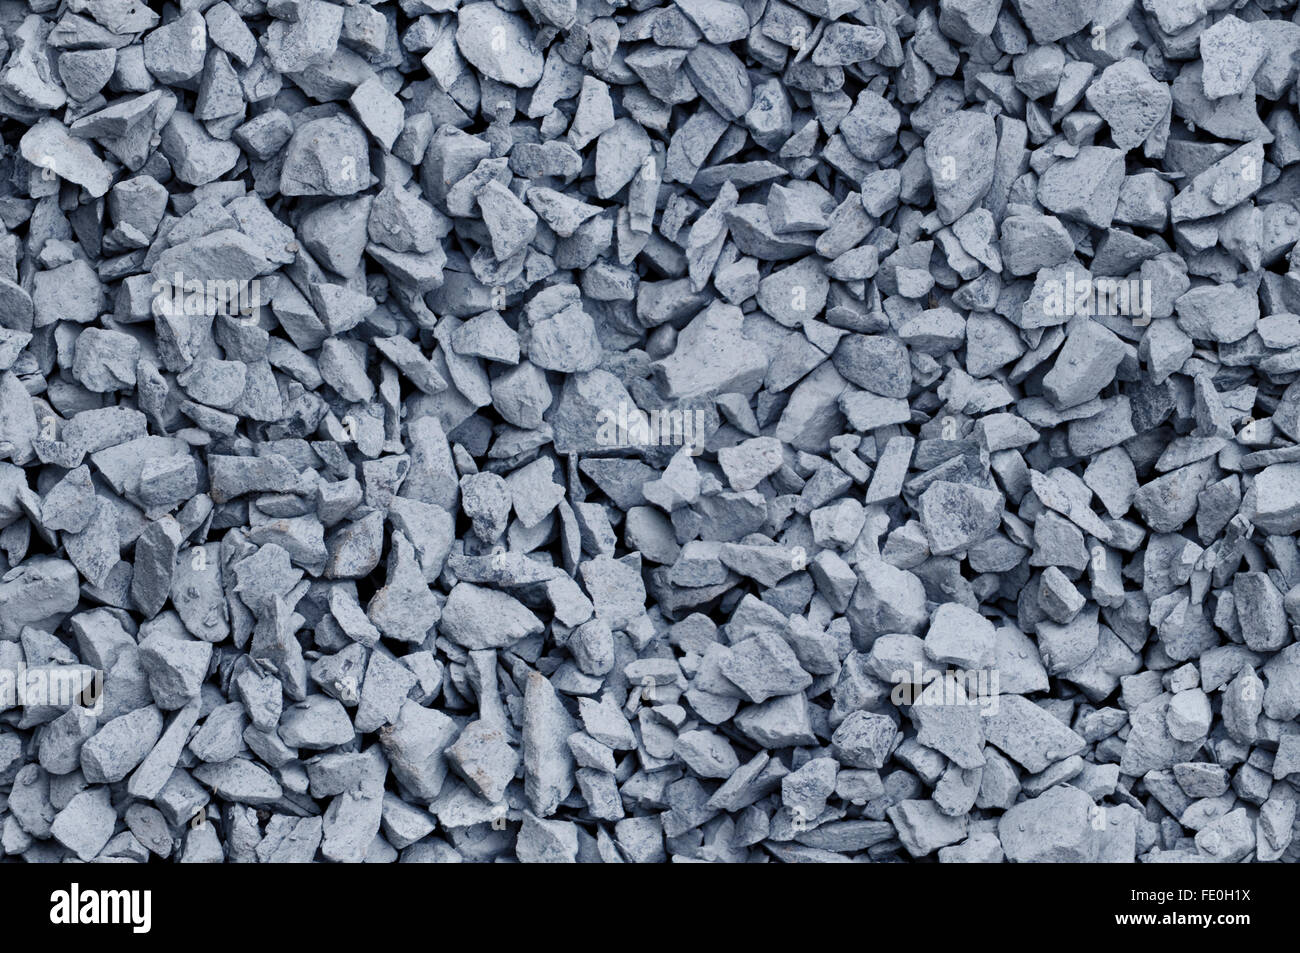 Bluish gray gravel used for construction fill, seamless background texture - Stock Image